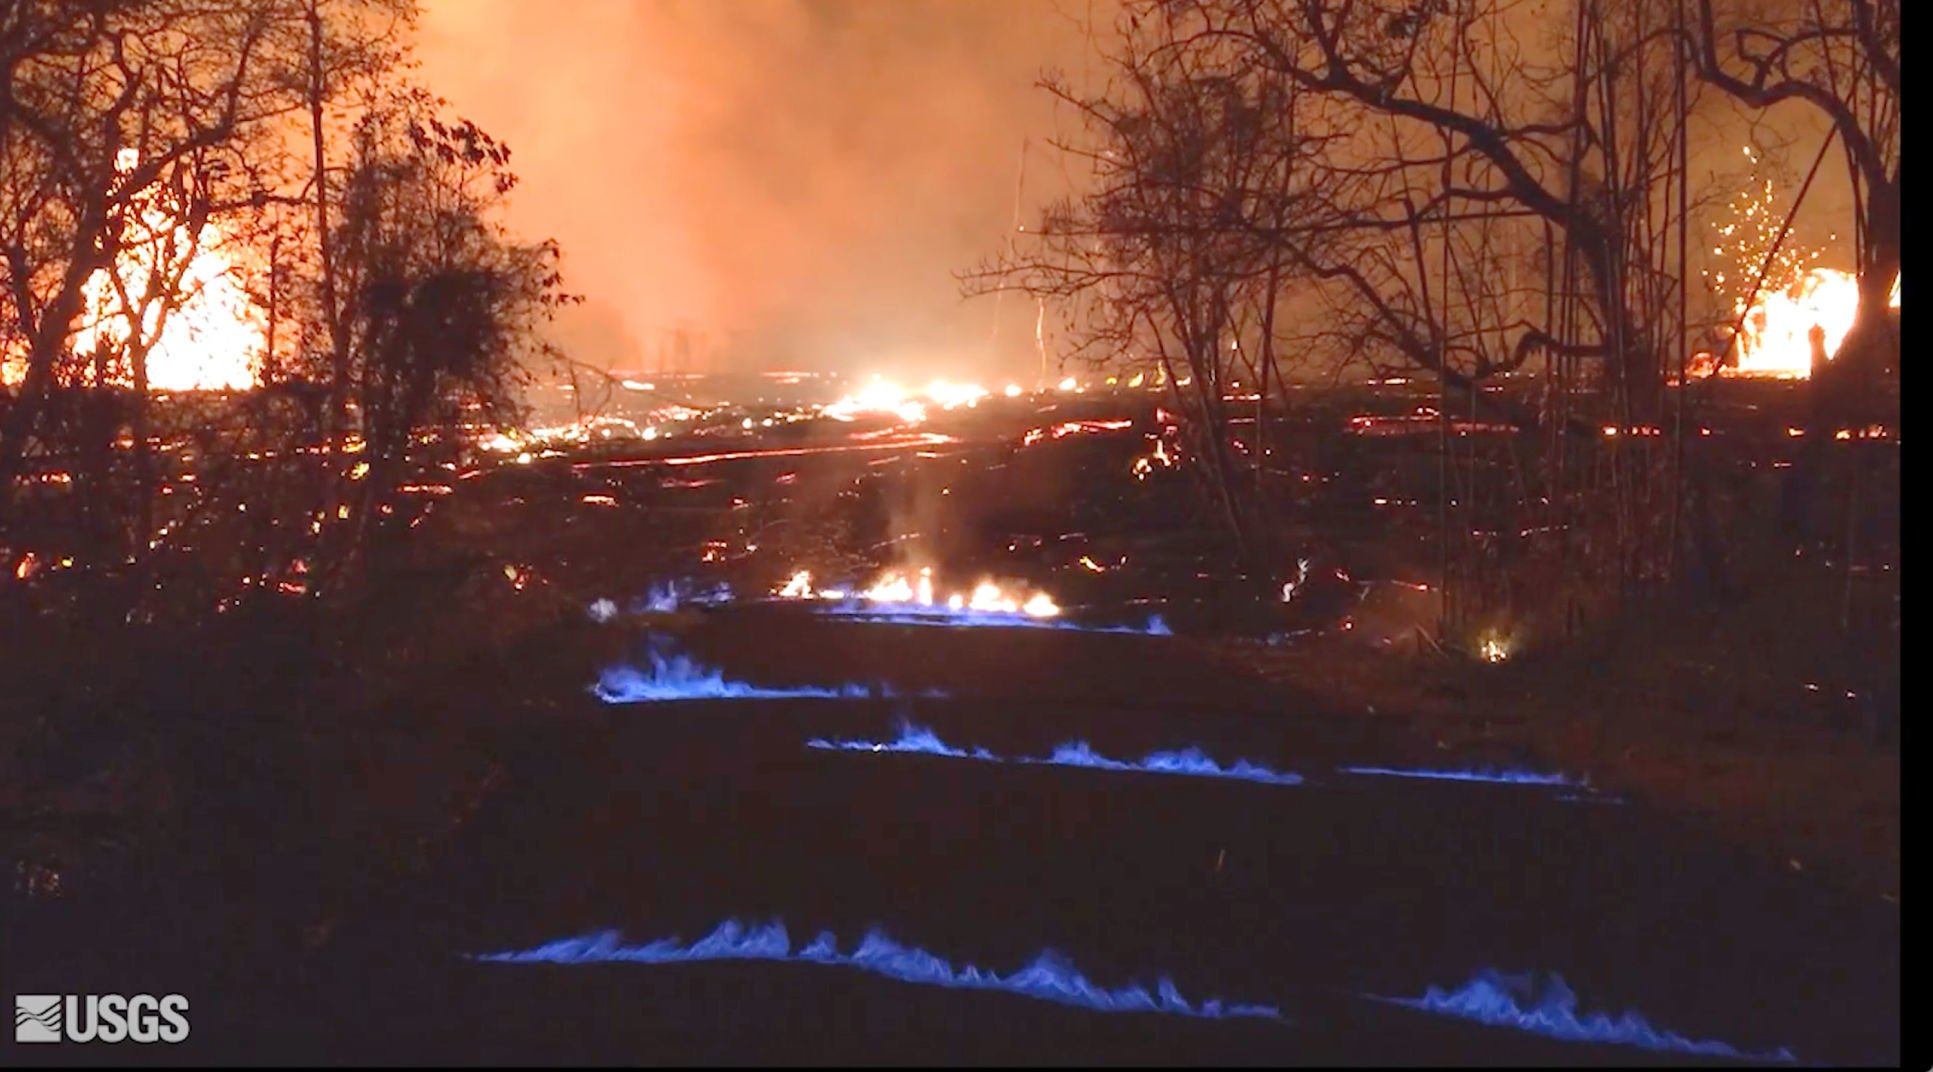 hawaii volcano generates blue flames from burning methane jackson rh jhnewsandguide com